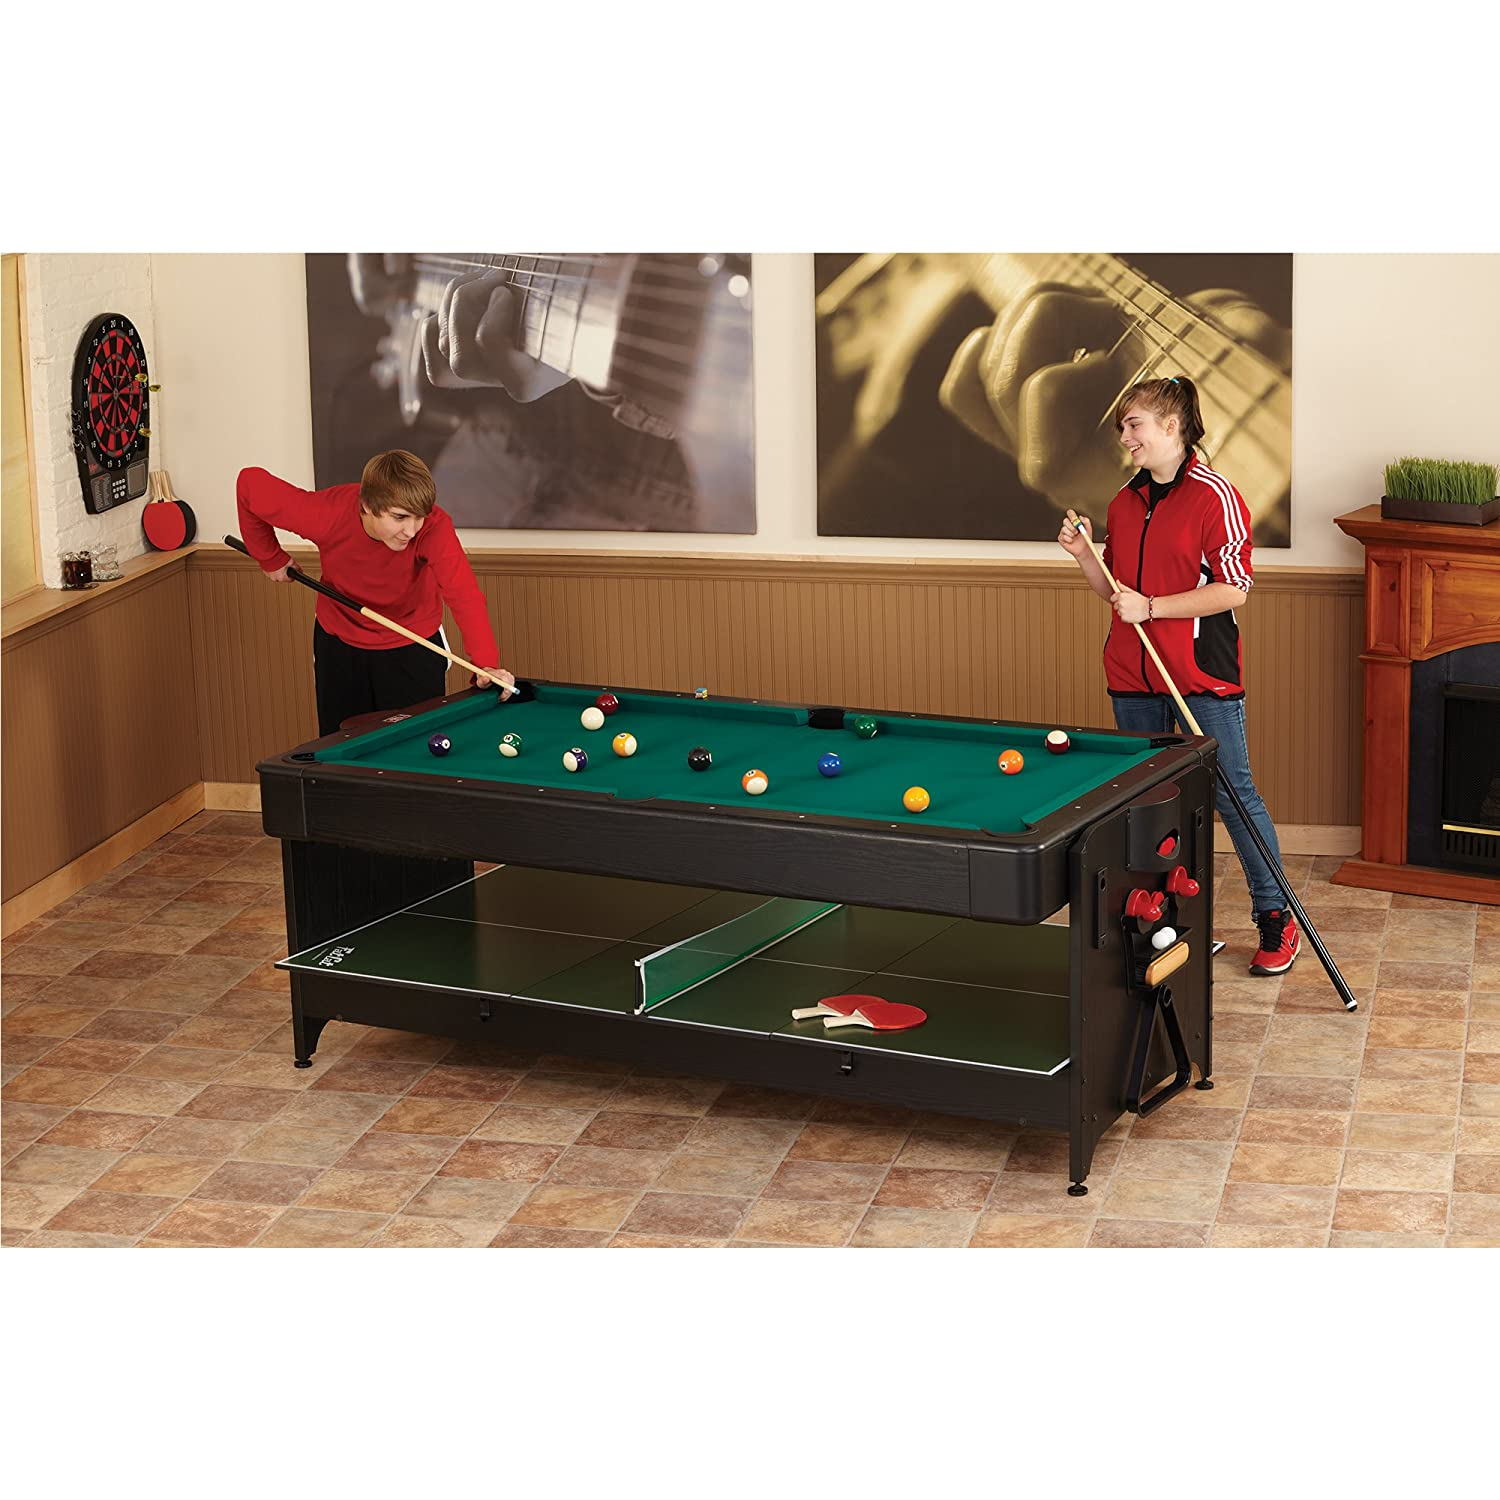 Amazon.com : Fat Cat Original 3 In 1, 7 Foot Pockey Game Table (Air Hockey,  Billiards And Table Tennis) : Tabletop Billiards Games : Sports U0026 Outdoors